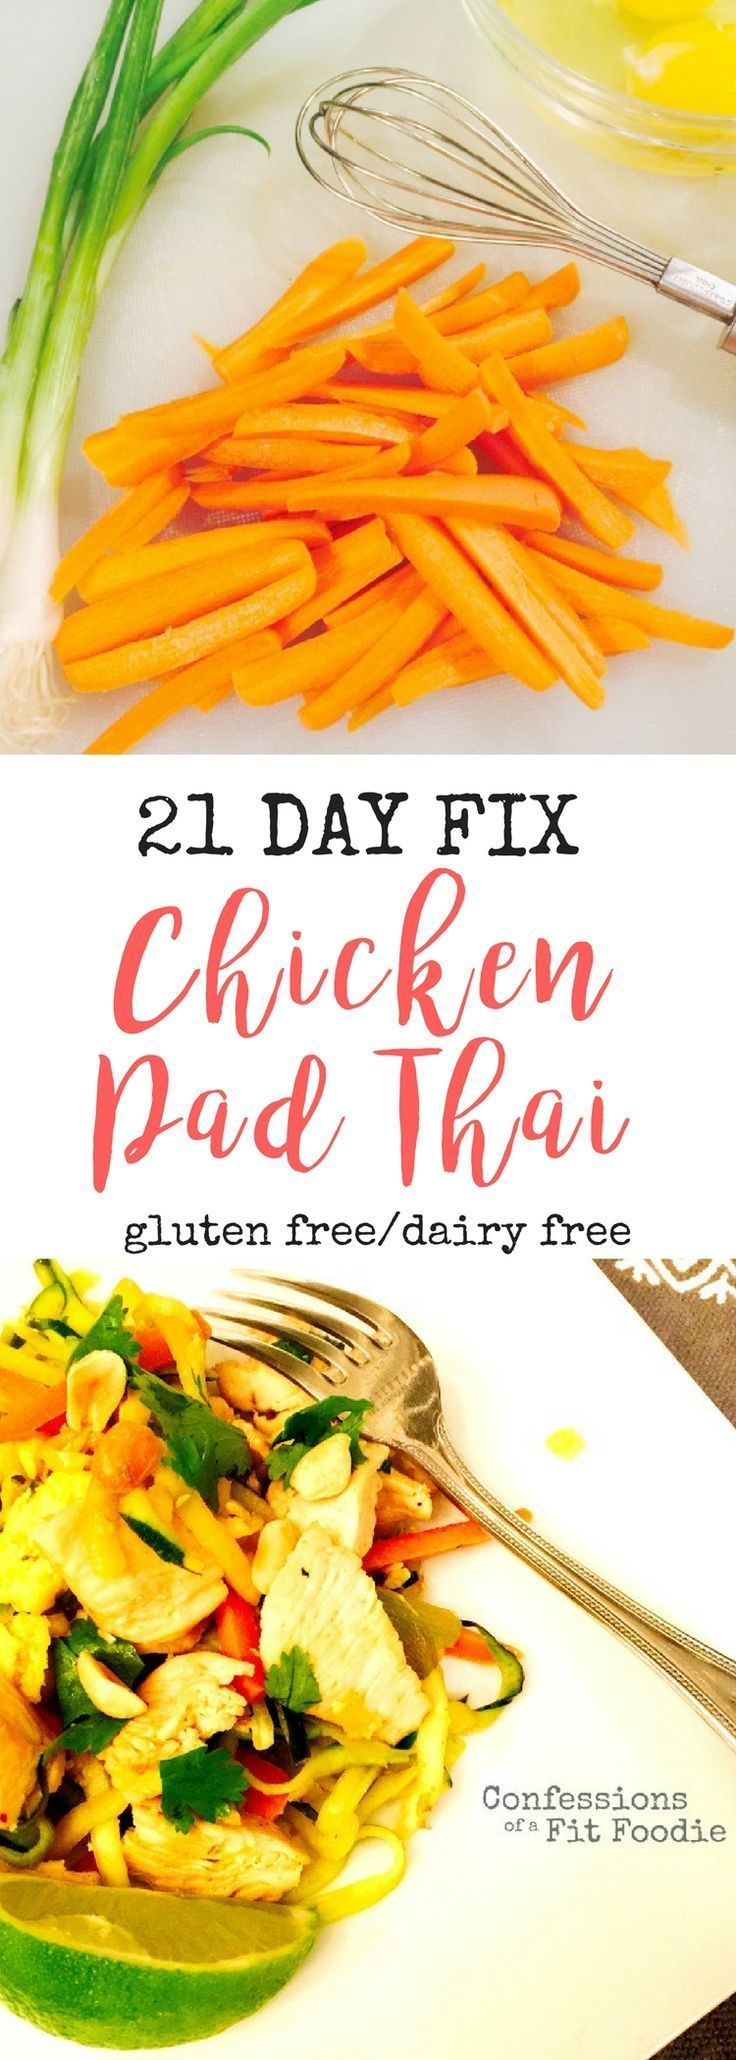 21 Day Fix Chicken Pad Thai Zoodles (Low Carb/gluten Free/ Dairy Free 21 Day Fix Chicken Pad Thai Zoodles (Low Carb/Gluten Free/ Dairy Free Gluten Free Recipes gluten free 21 day fix recipes